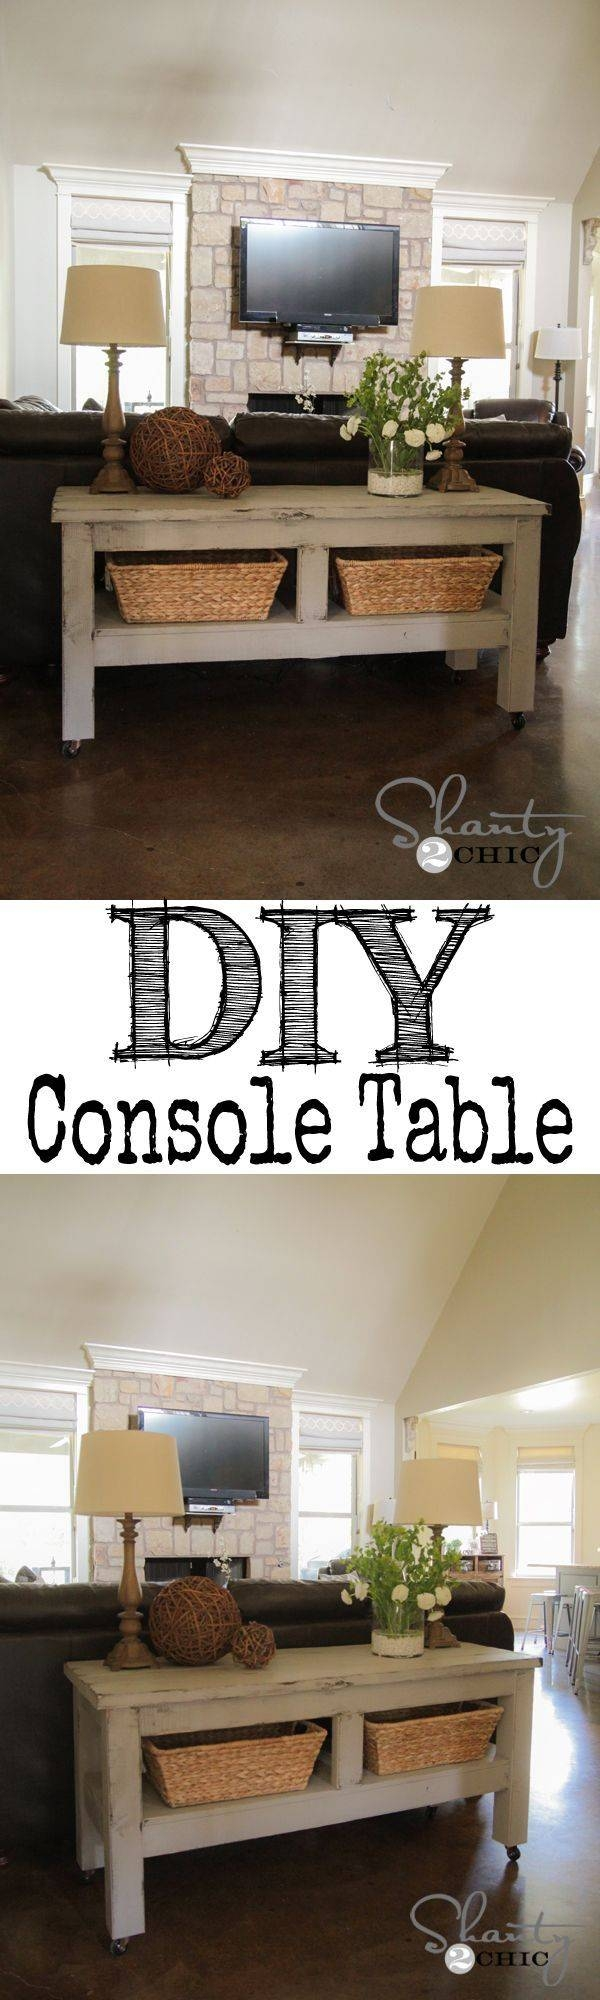 Best 25+ Table Behind Couch Ideas On Pinterest | Behind Sofa Table within Sofa Back Console (Image 7 of 30)